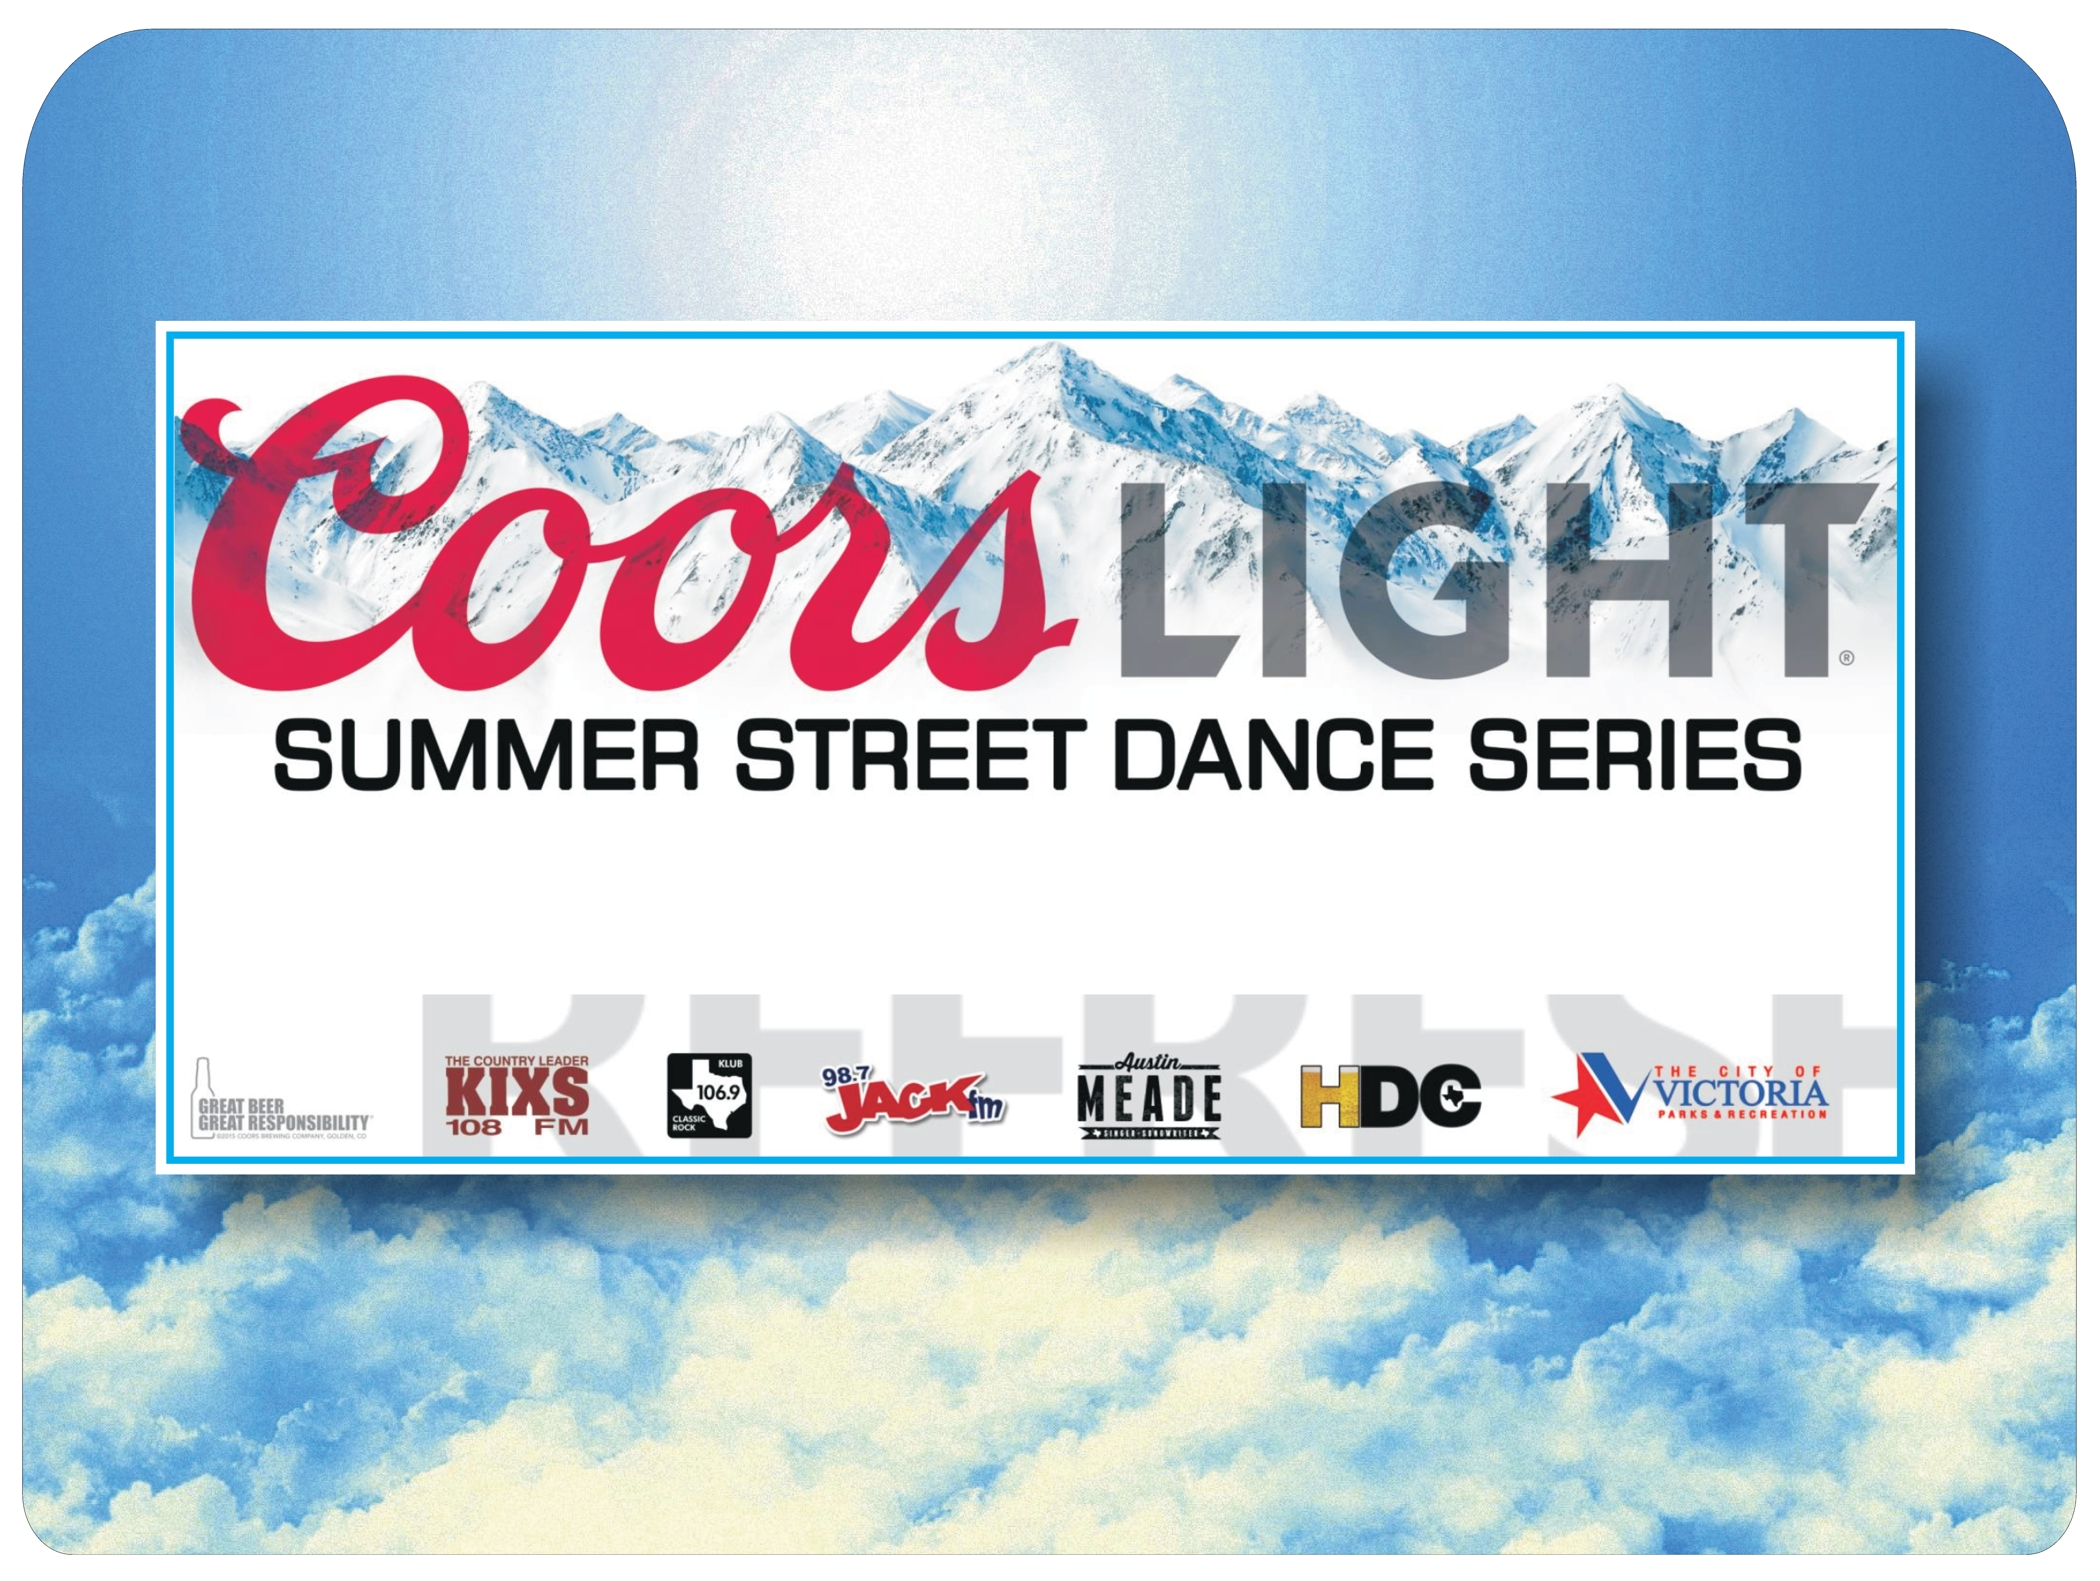 Coors 20light 20summer 20street 20dance 20series 202015 20  20banner logo artwork